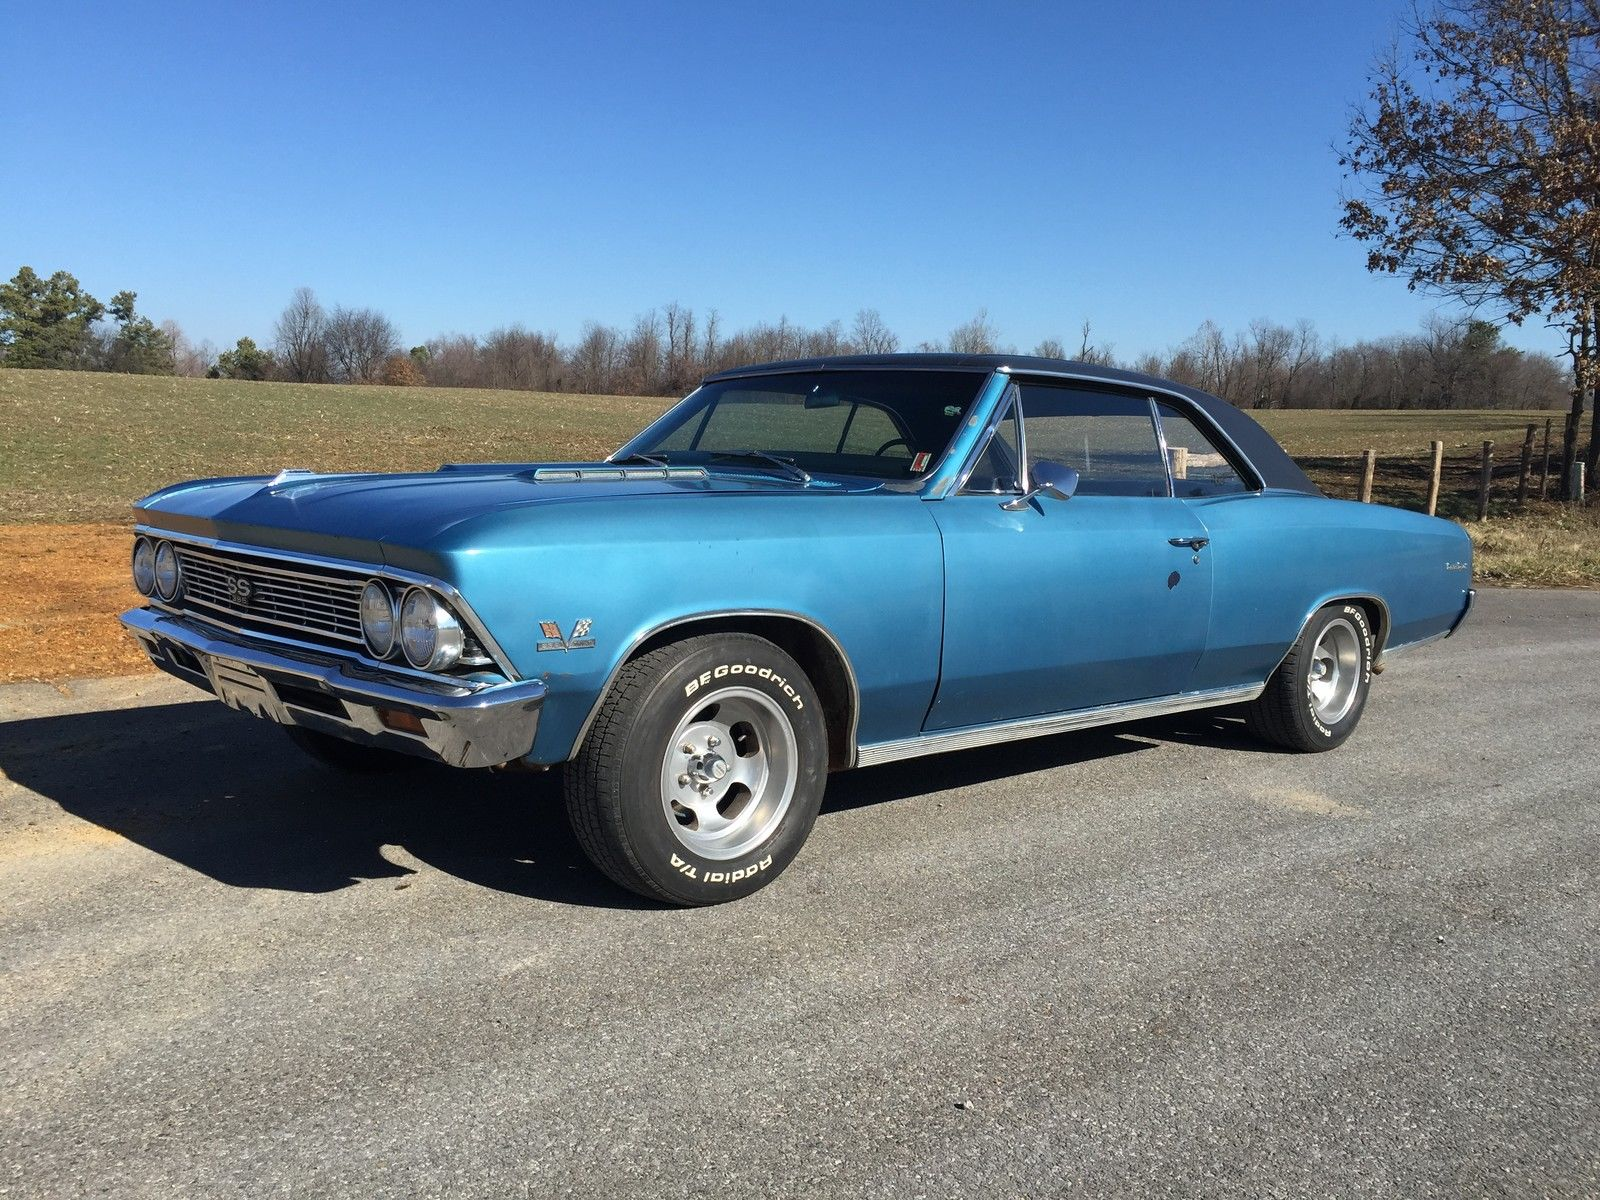 1966 Chevelle Ss396 4speed Buckets Console Stored Last 25 Years Chevrolet Ss 396